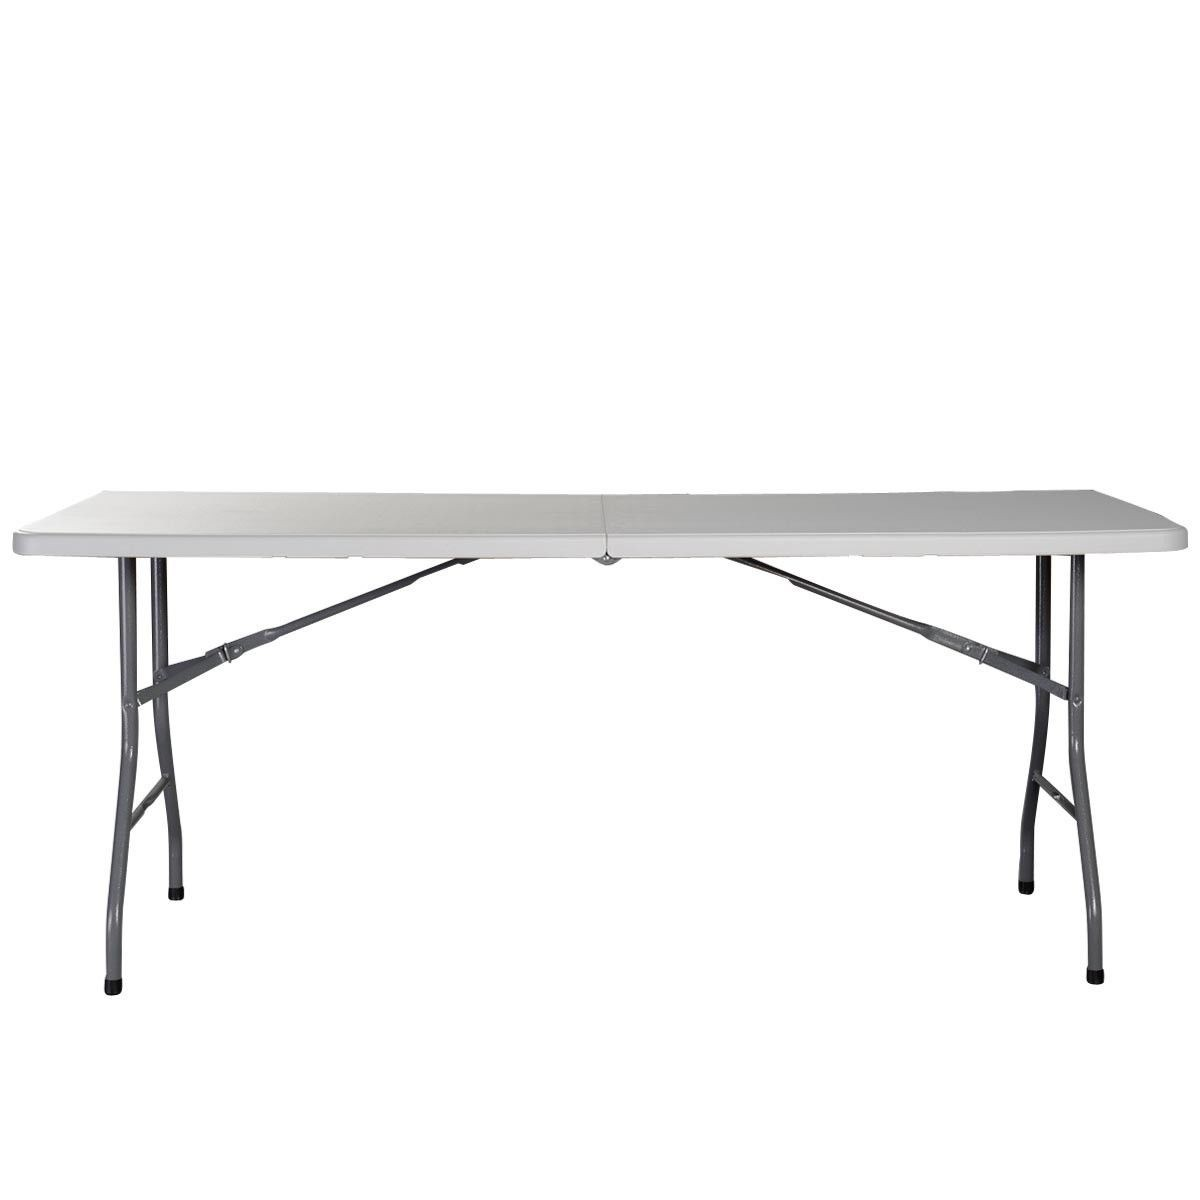 4' Folding Table Dining Camp Table Picnic Party Buffet BBQ Camping Easy Clean by Apontus